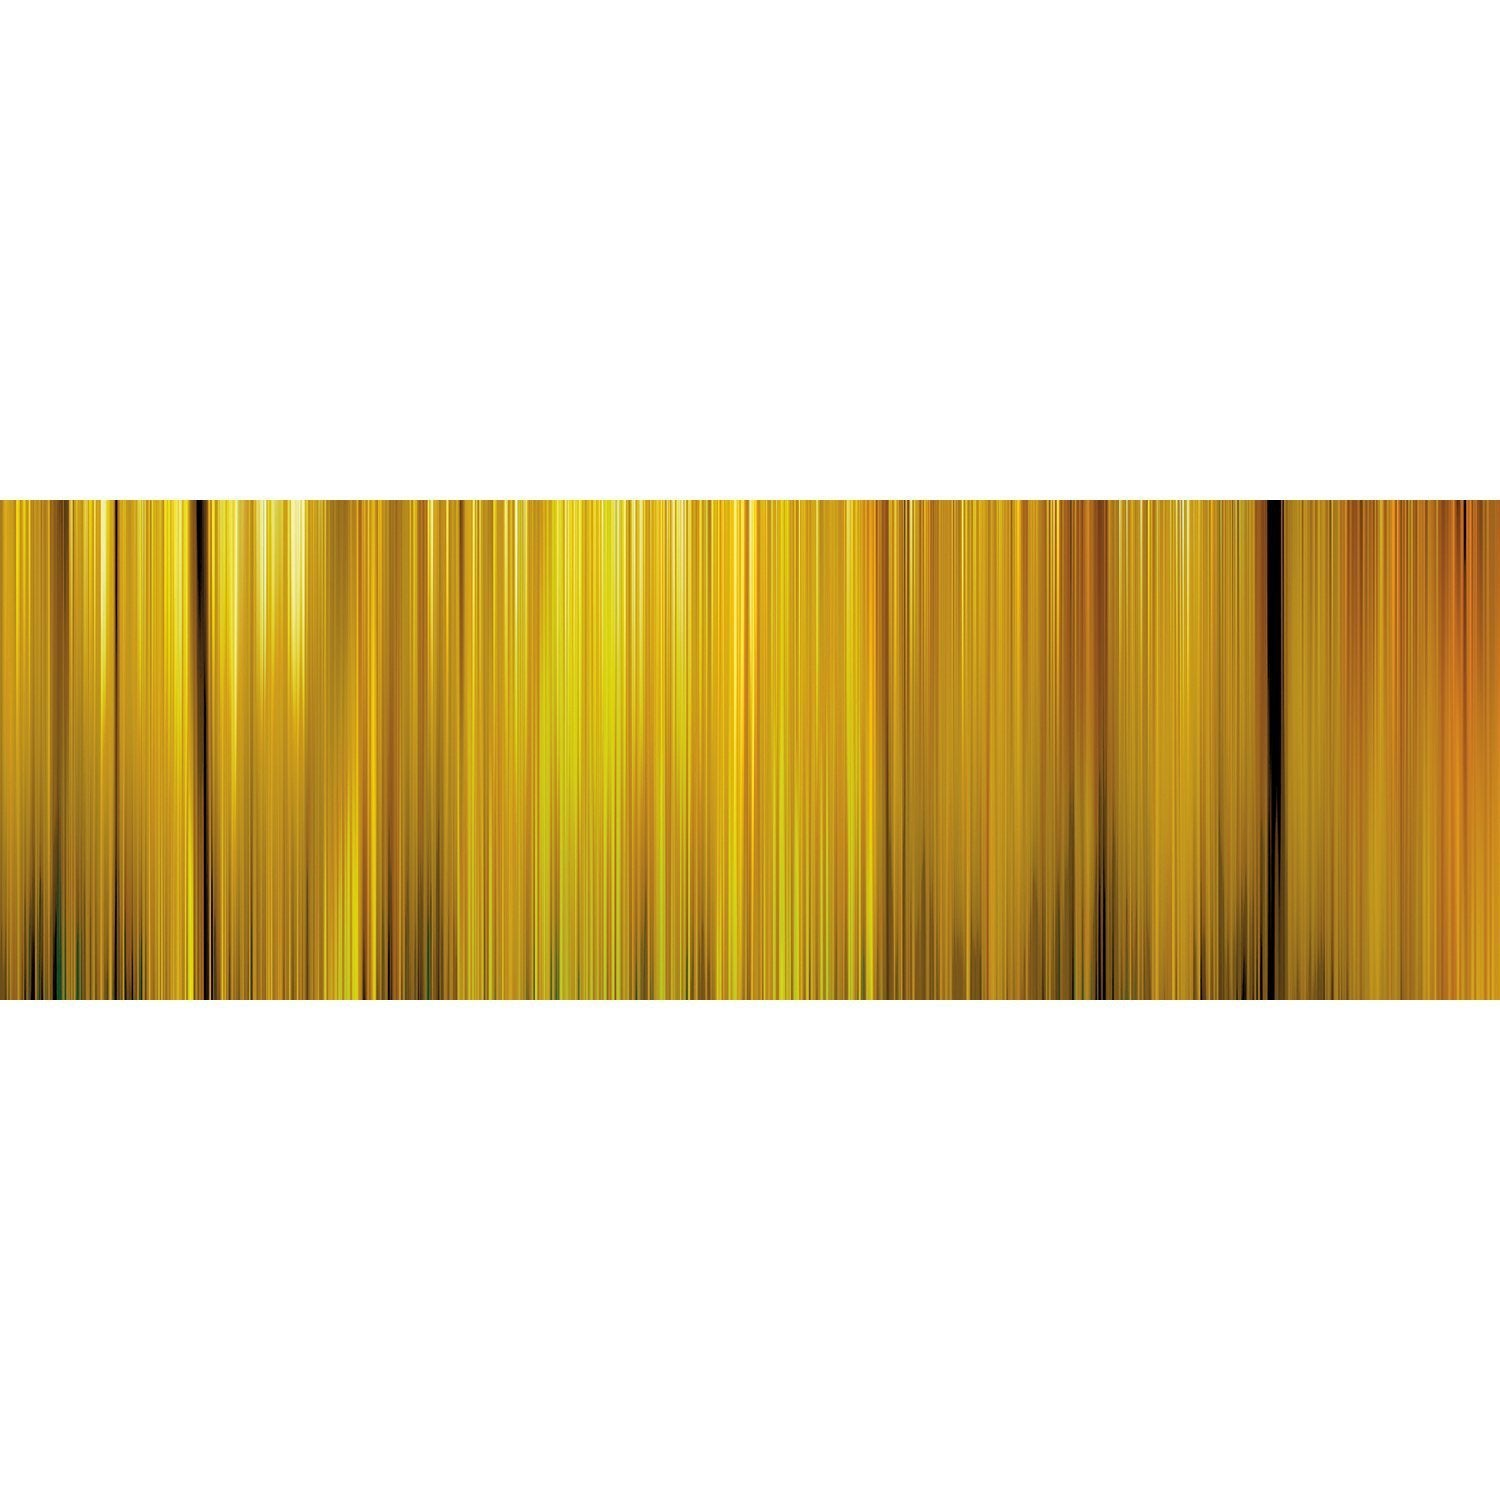 Wall Acoustics Full Size Mural Muffle Abstract Mural - Kinetic Yellow Full Size Mural